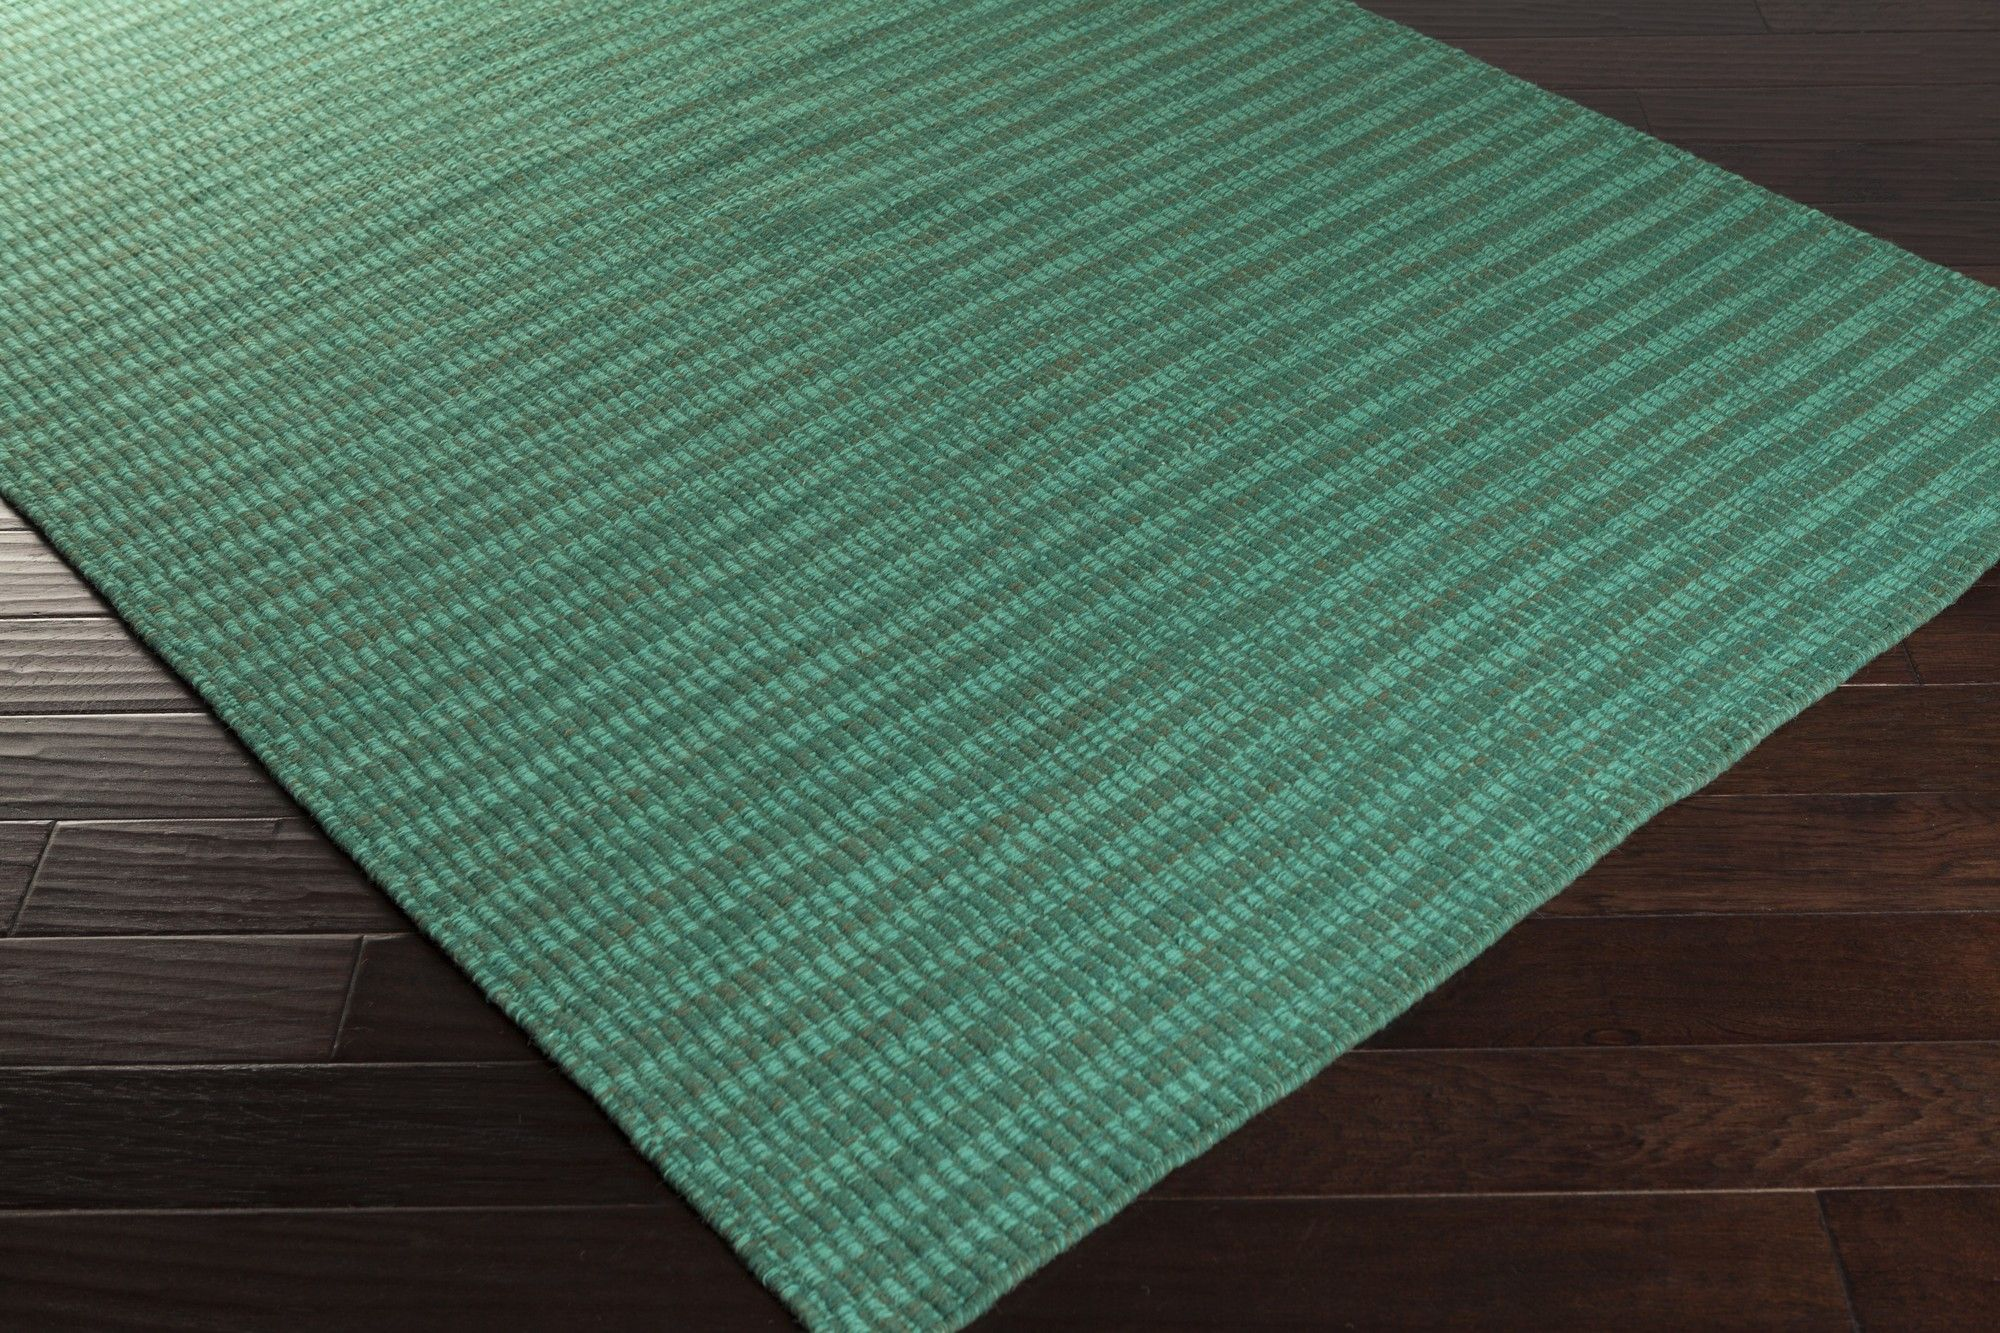 Ravena Green & Teal Area Rug